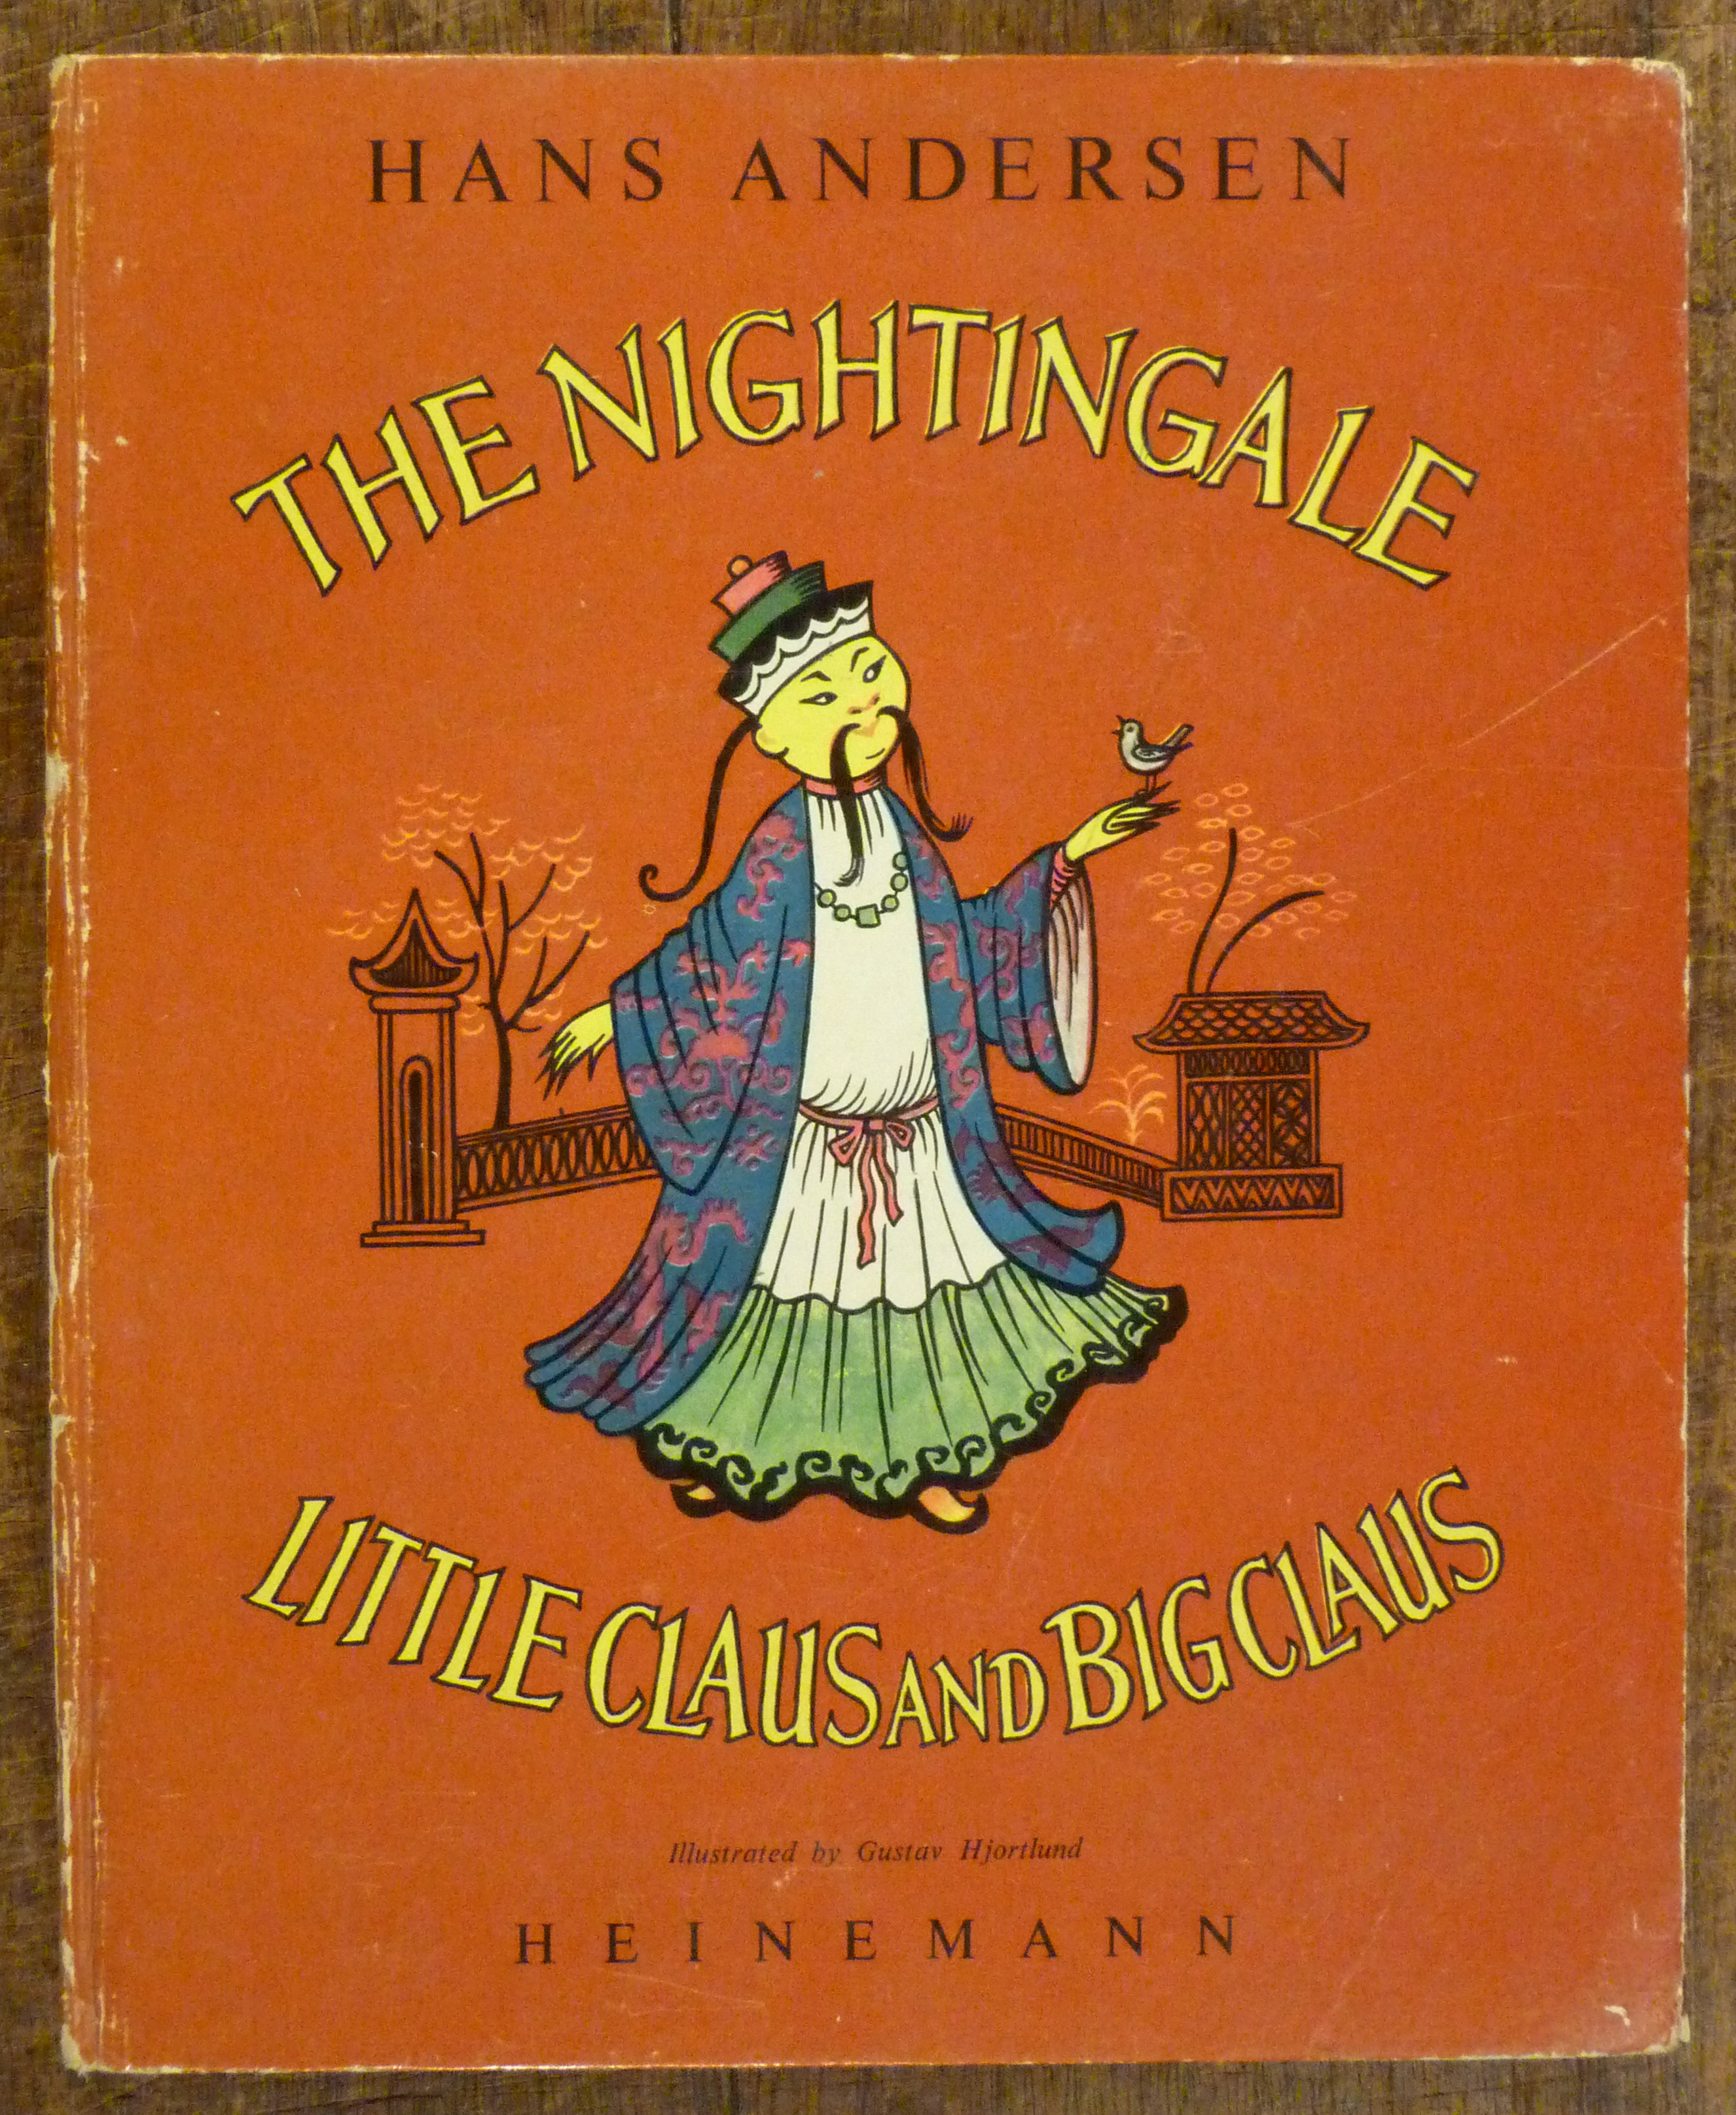 Image for The Nightingale & Little Claus and Big Claus